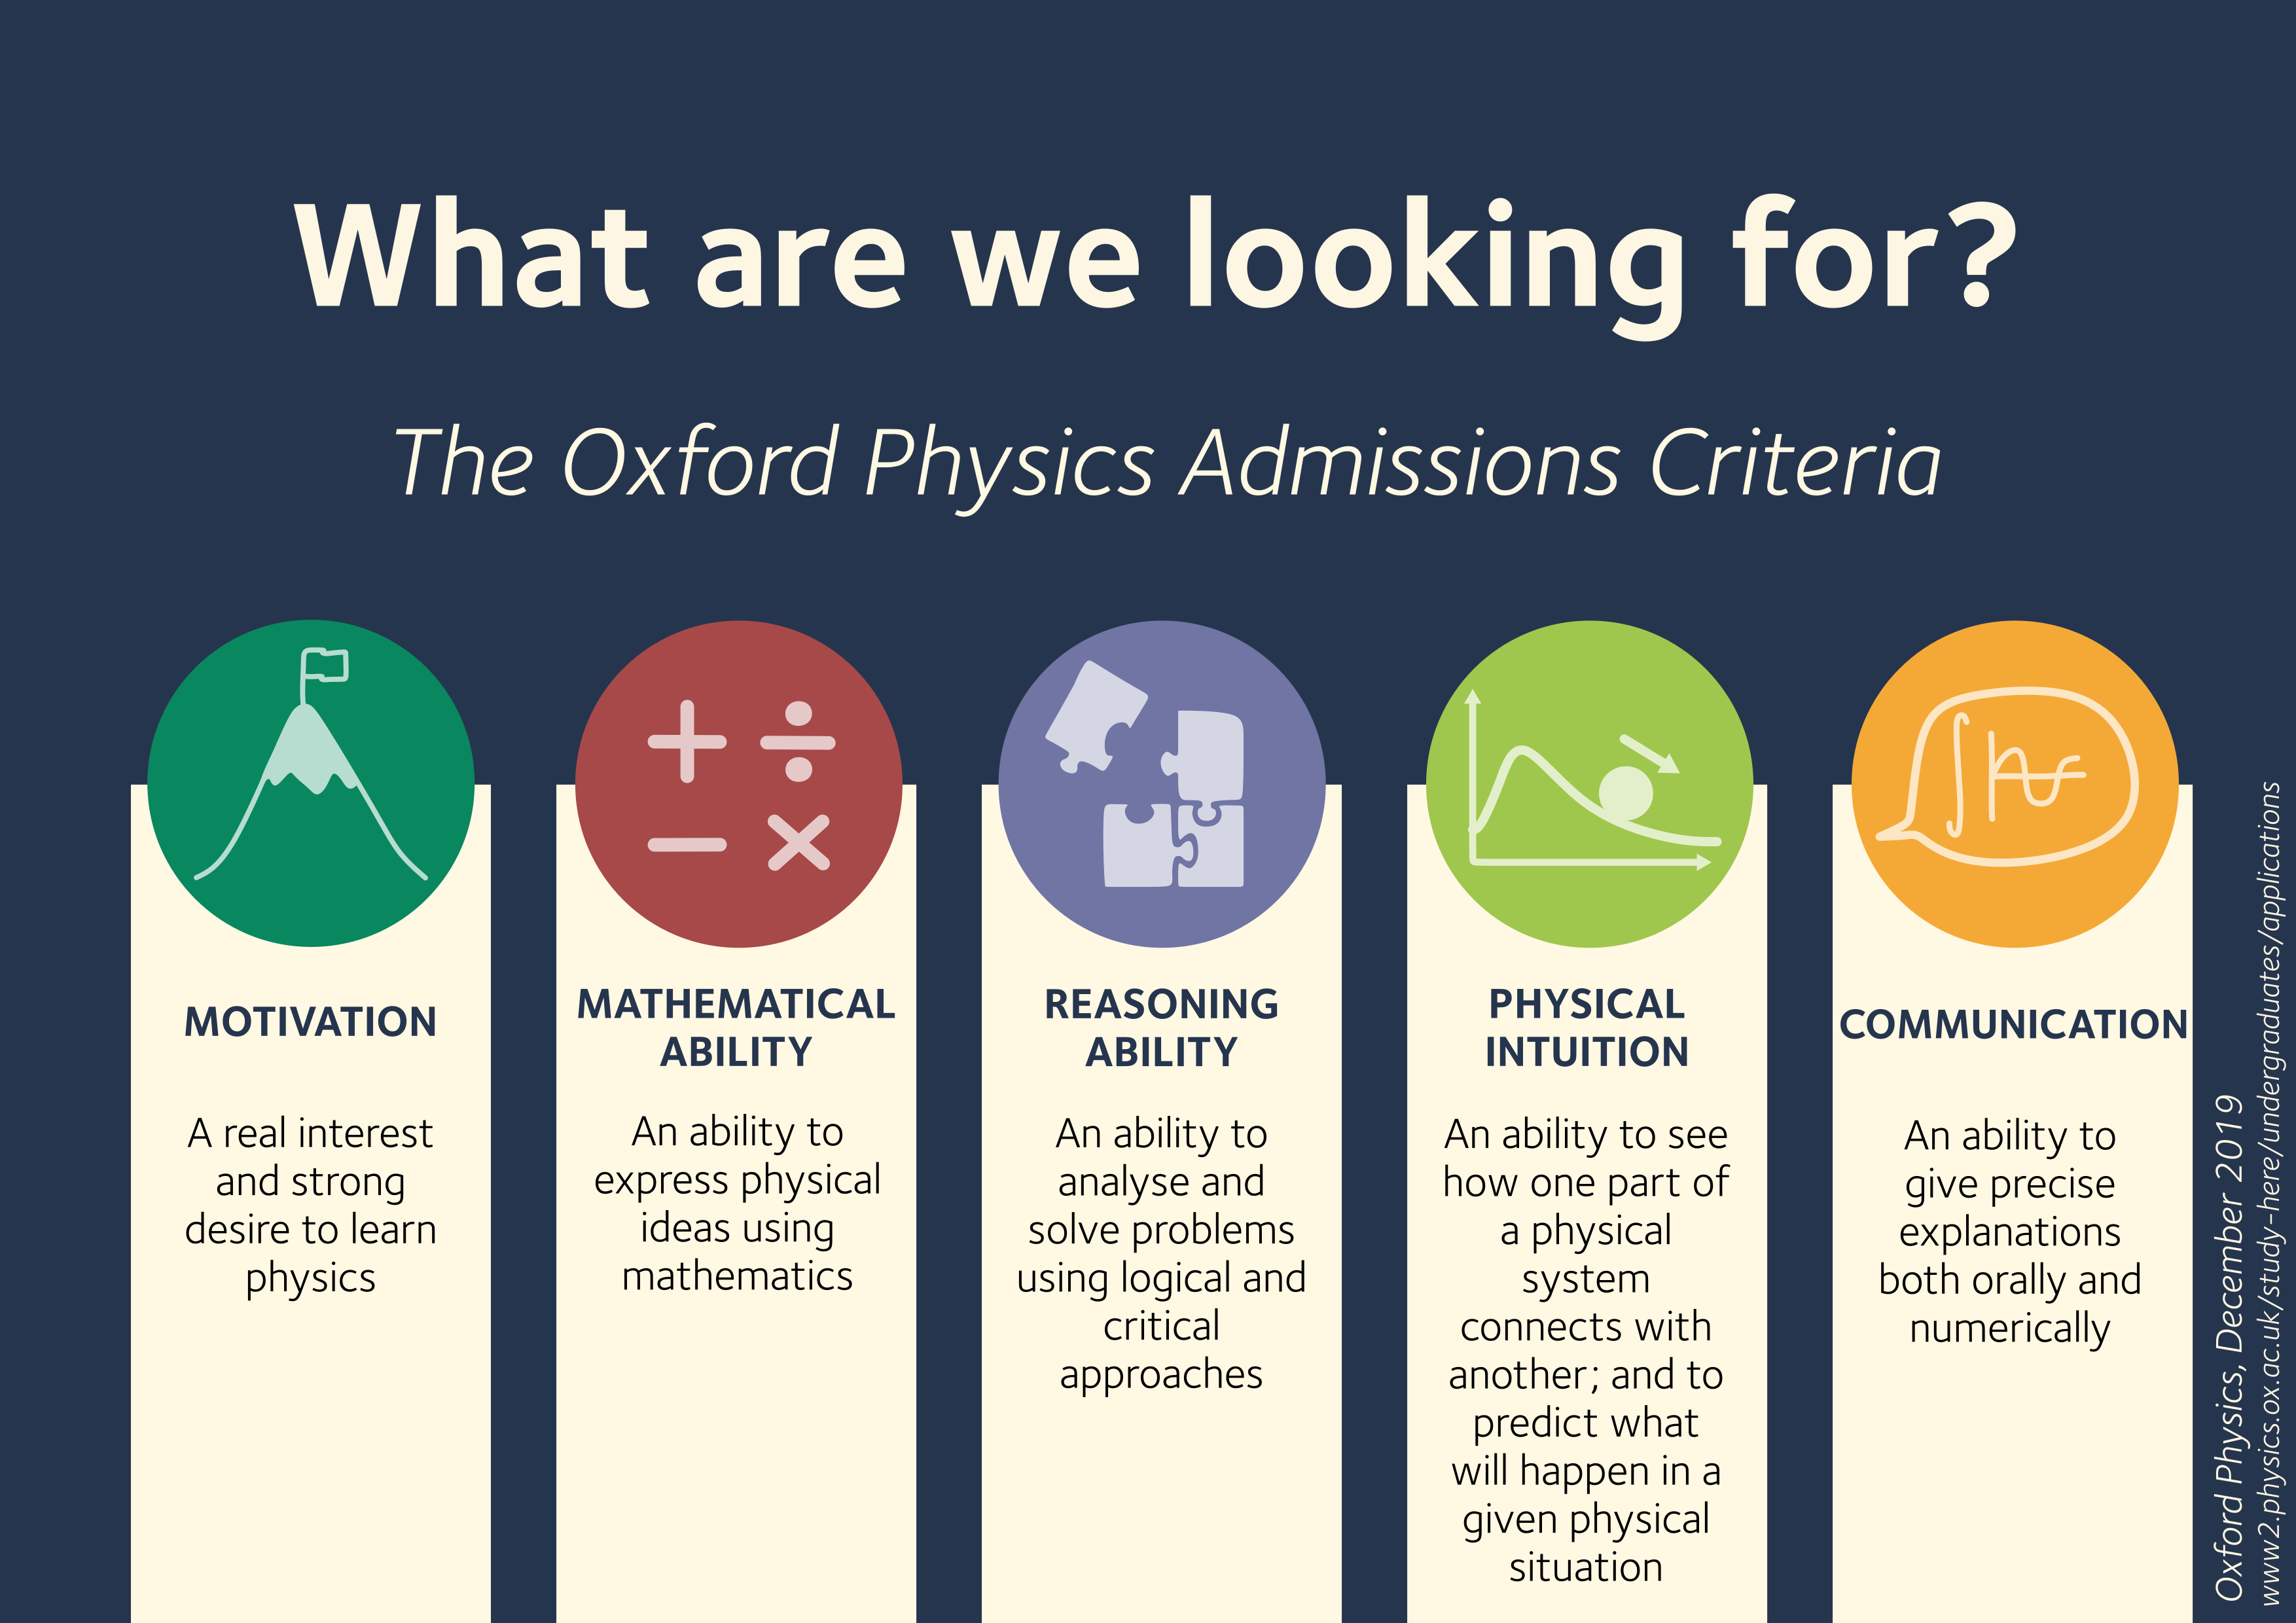 The Department is looking for students who can demonstrate: Motivation: a real interest and strong desire to learn physics.     Ability to express physical ideas using mathematics; mathematical ability. Reasoning ability: ability to analyse and solve problems using logical and critical approaches. Physical intuition: an ability to see how one part of a physical system connects with another; and to predict what will happen in a given physical situation.     Communication: ability to give precise explanations both orally and numerically.